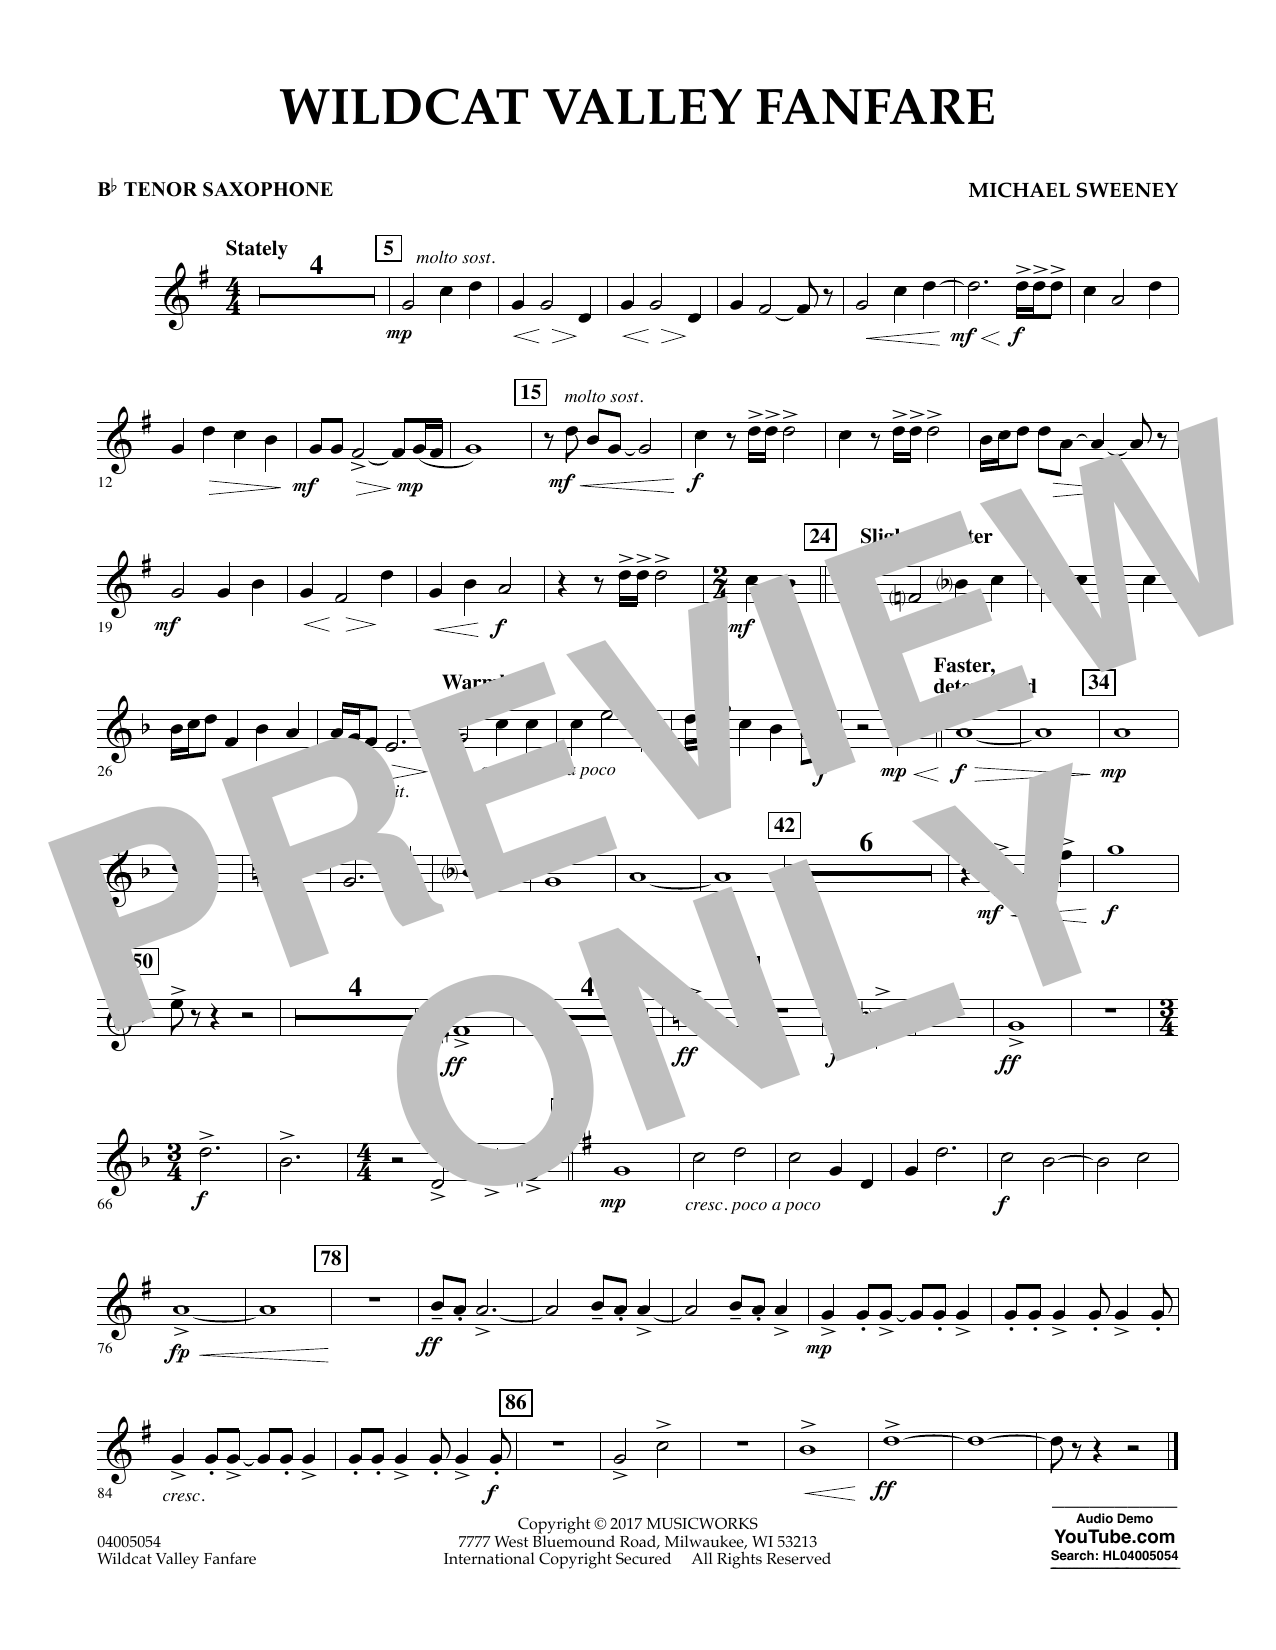 Michael Sweeney Wildcat Valley Fanfare - Bb Tenor Saxophone sheet music notes and chords. Download Printable PDF.